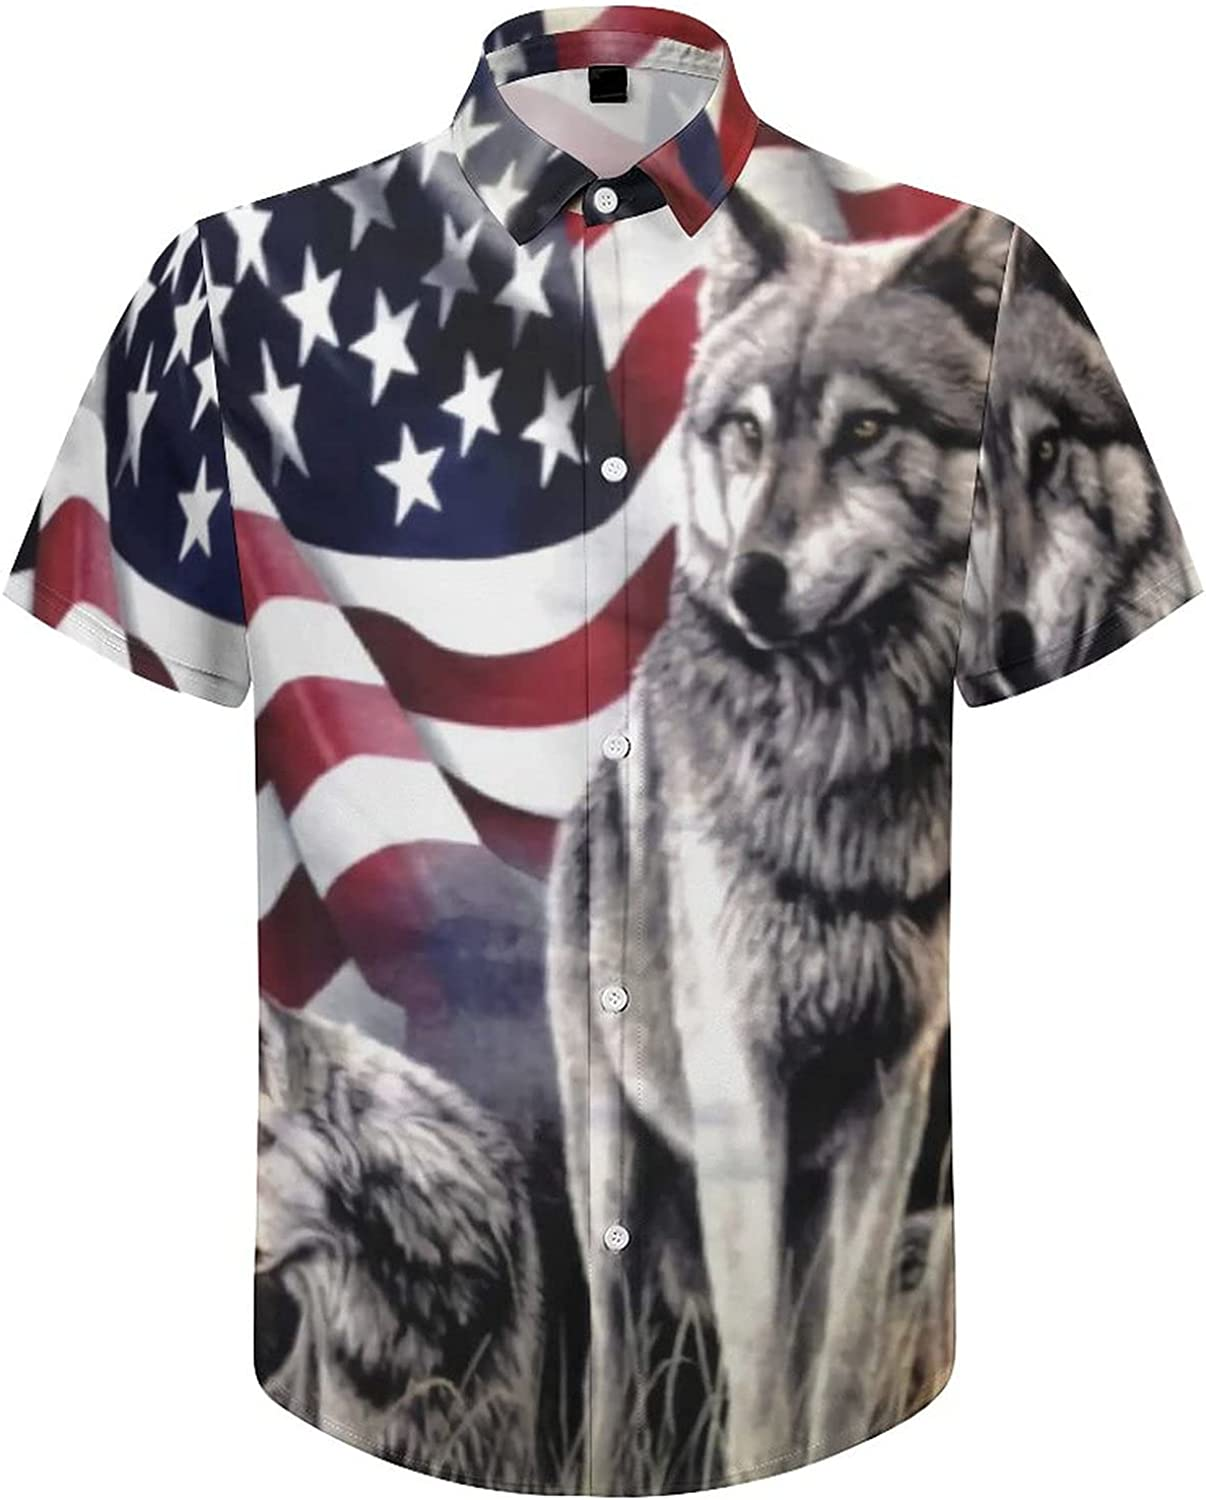 Men's Regular-Fit Short-Sleeve Printed Party Holiday Shirt American Flag Wolf